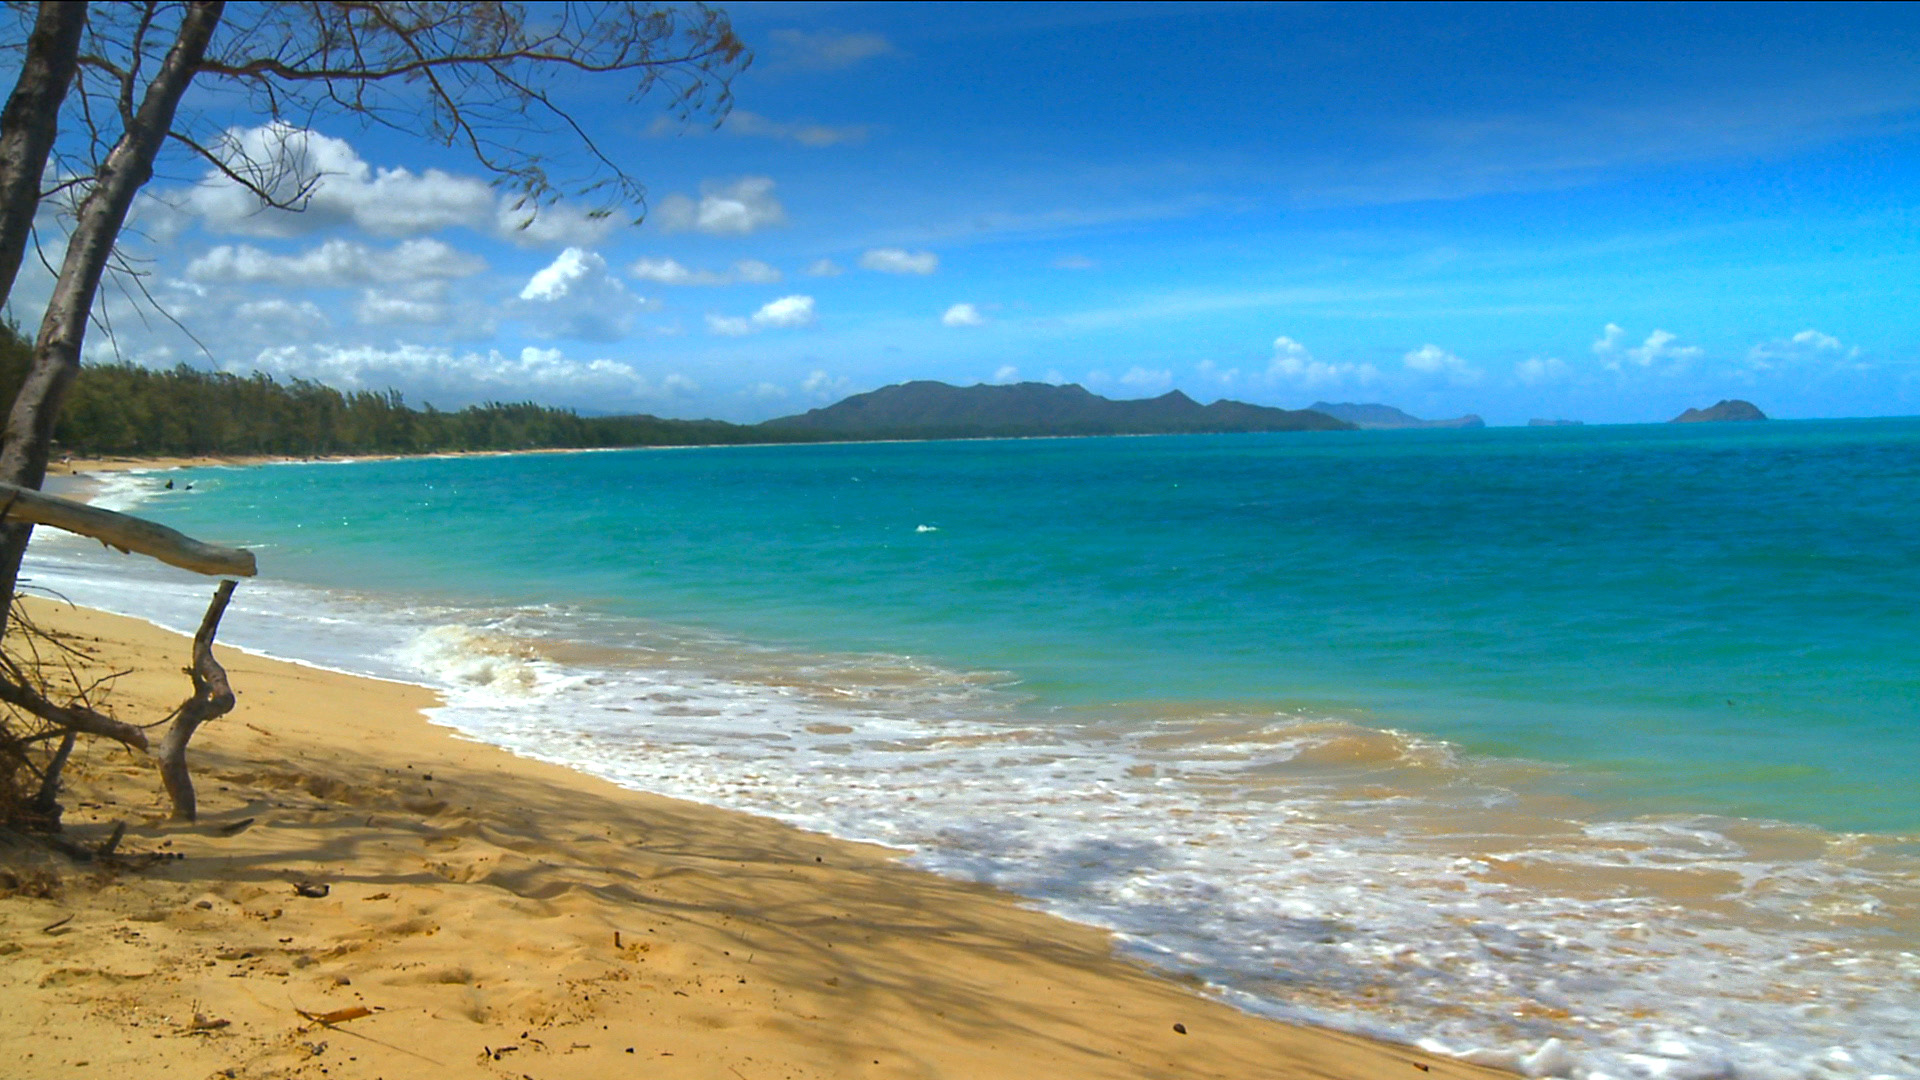 hawaii photos background screensaver beach beaches media 1920x1080